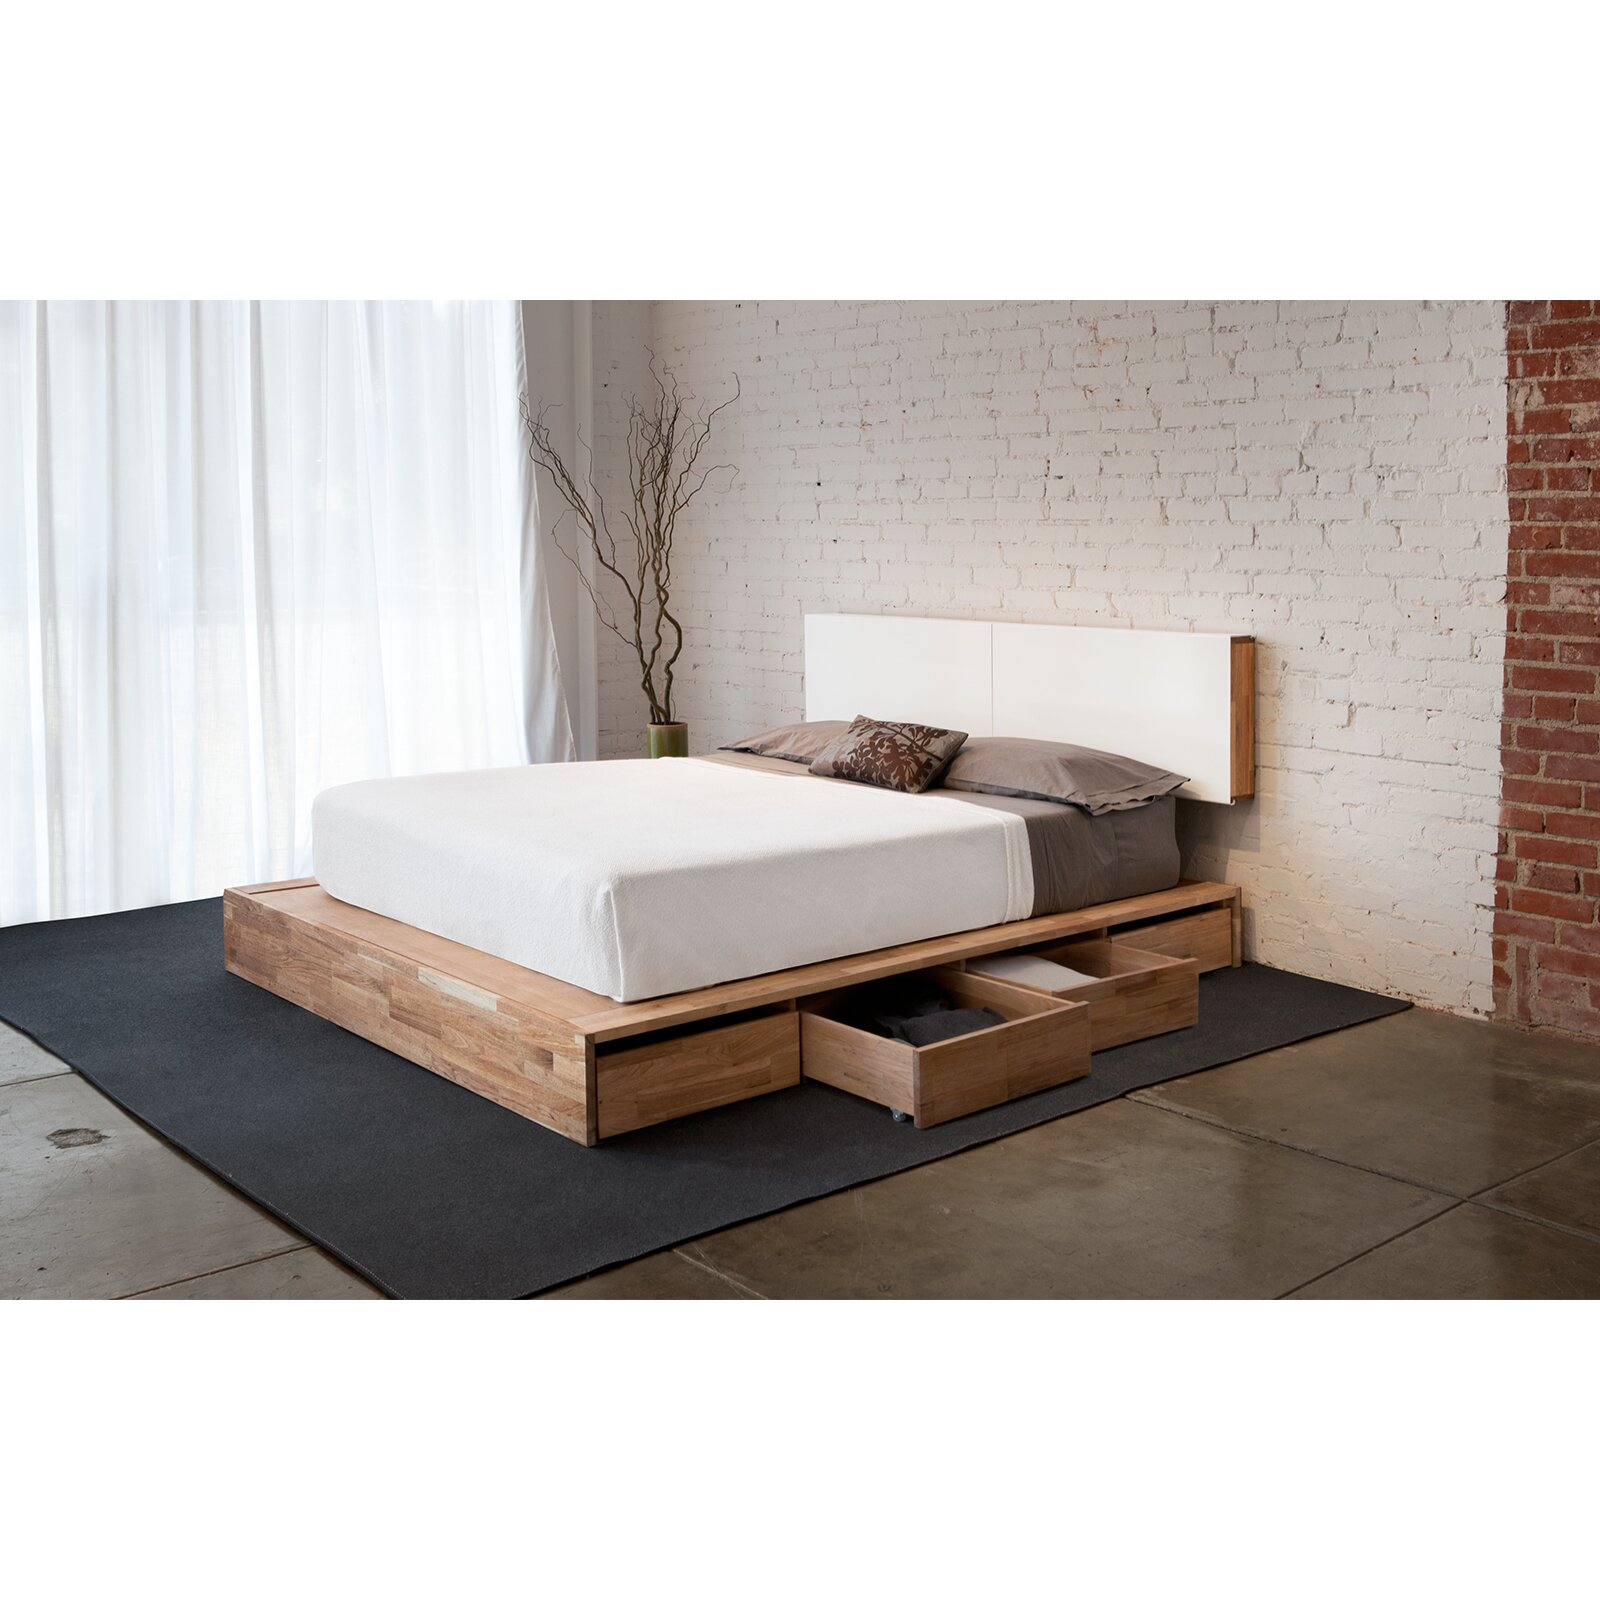 Mash Studios Lax Series Wood And Metal Panel Headboard